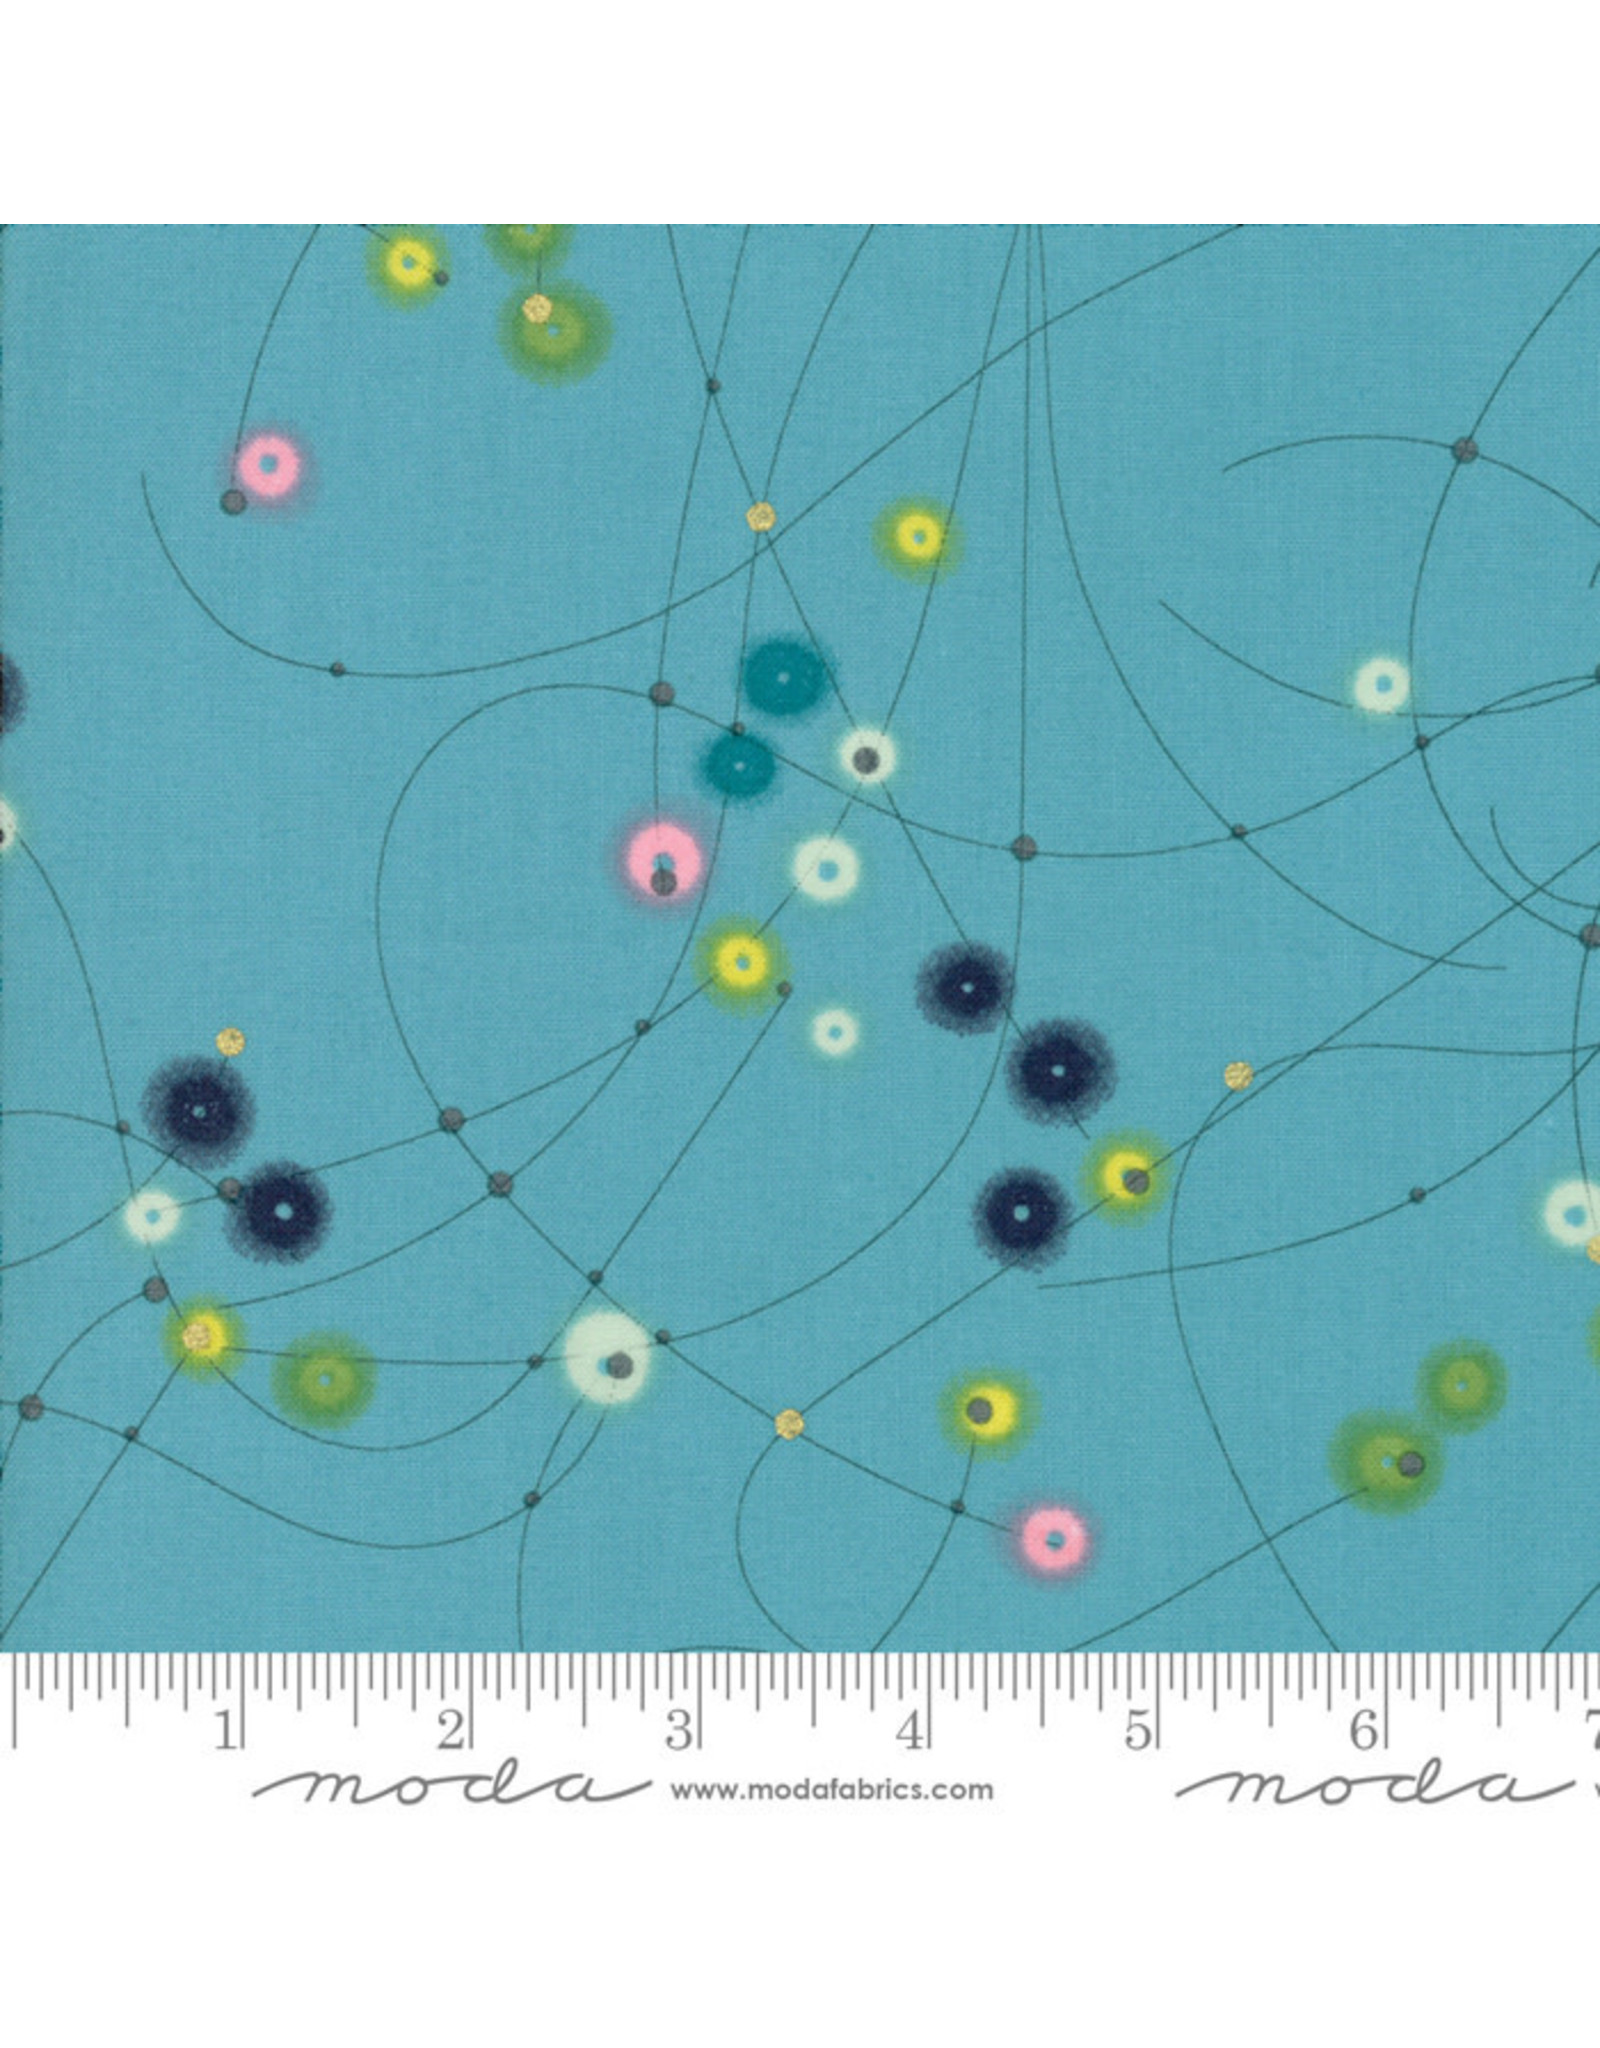 Moda Day in Paris - Watercolor Dots Turquoise coupon (± 28 x 110 cm)